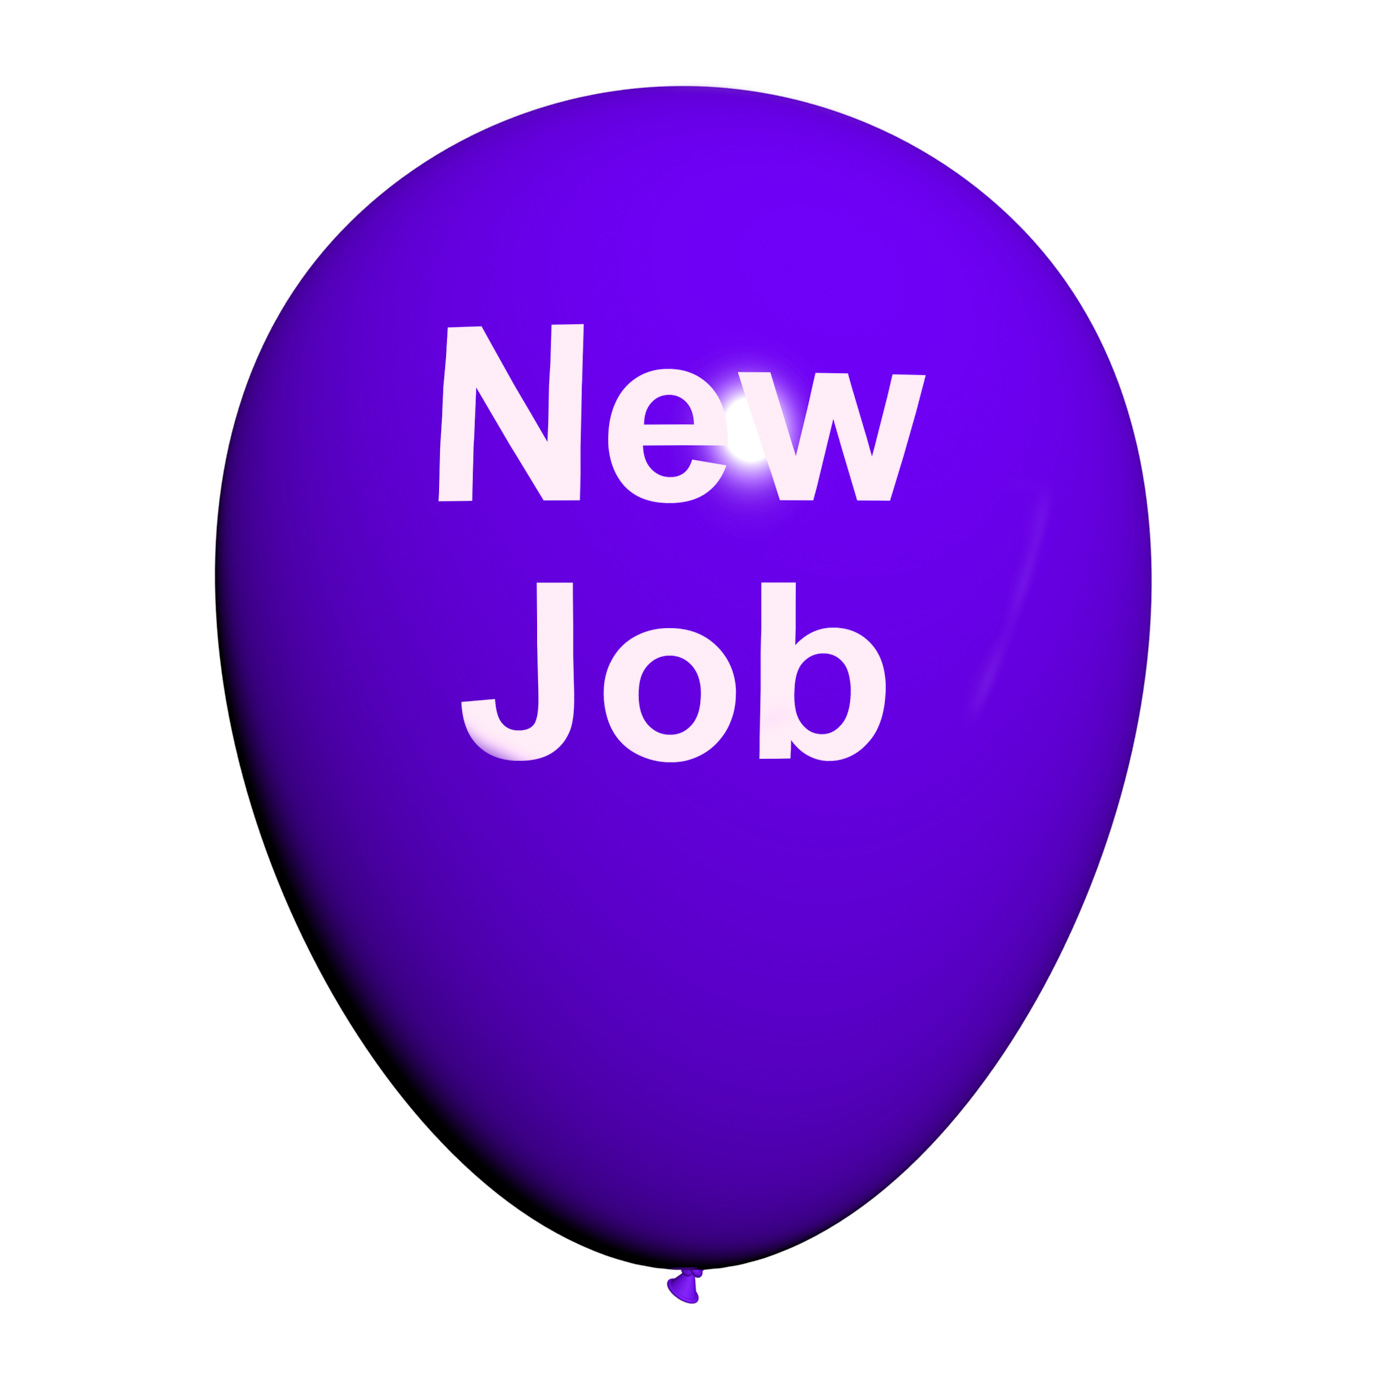 New Job Balloon Shows New Beginnings in Careers, Appointment, Balloon, Beginnings, Career, HQ Photo